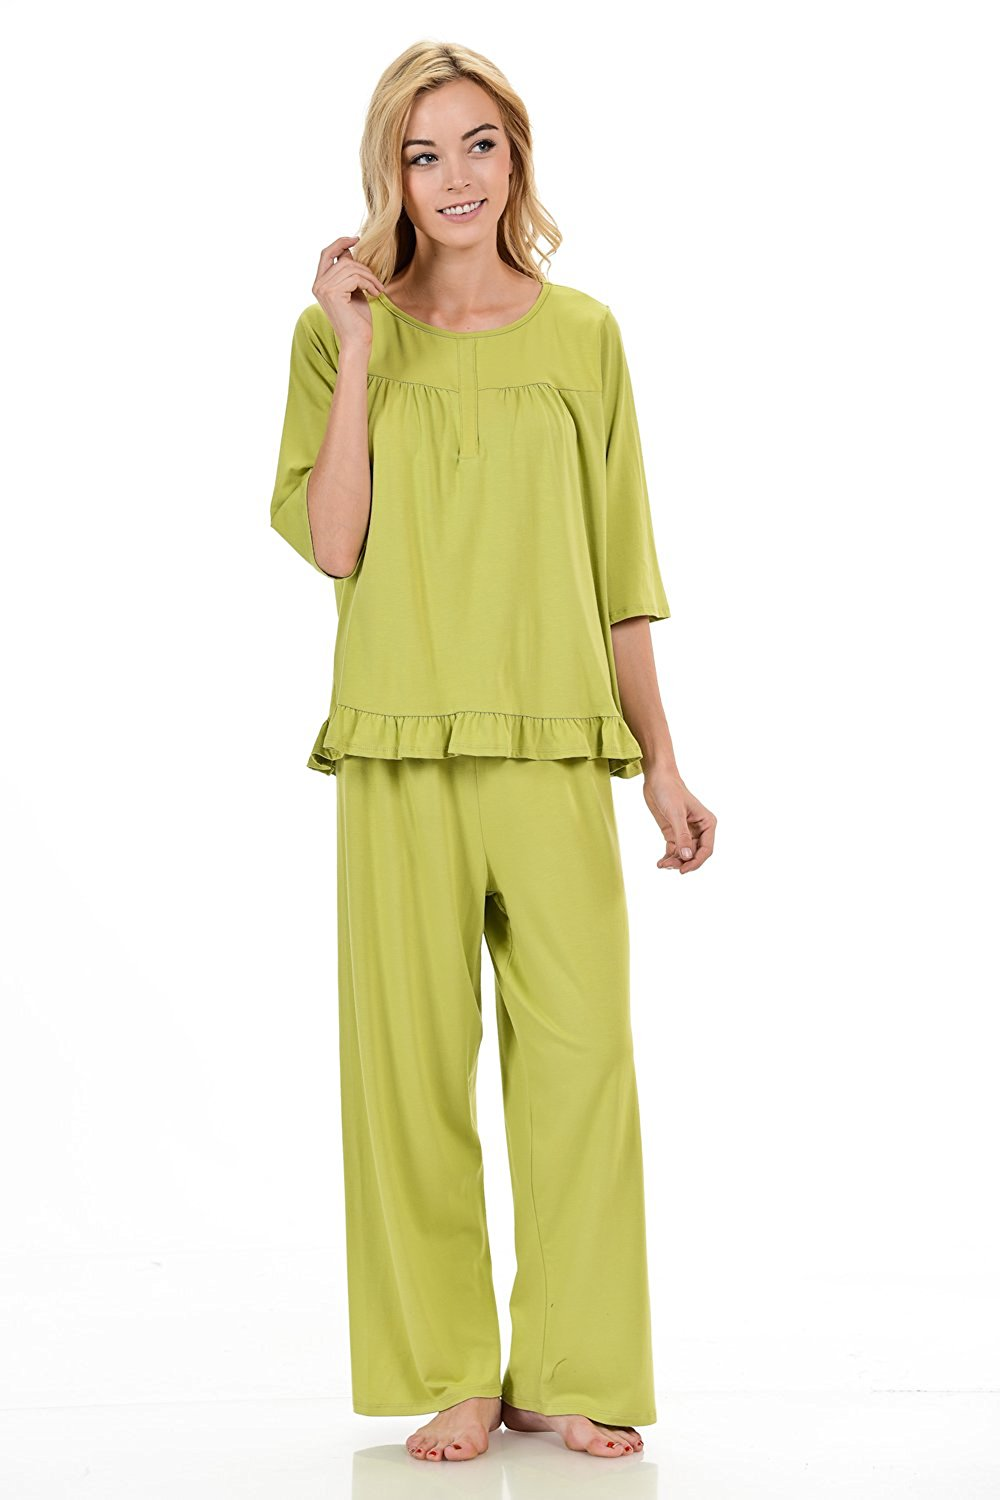 c84d046133 Get Quotations · Bamboosa Women s Nightgown Set 67% Viscose From Organic  Bamboo   28% Organic Cotton 5